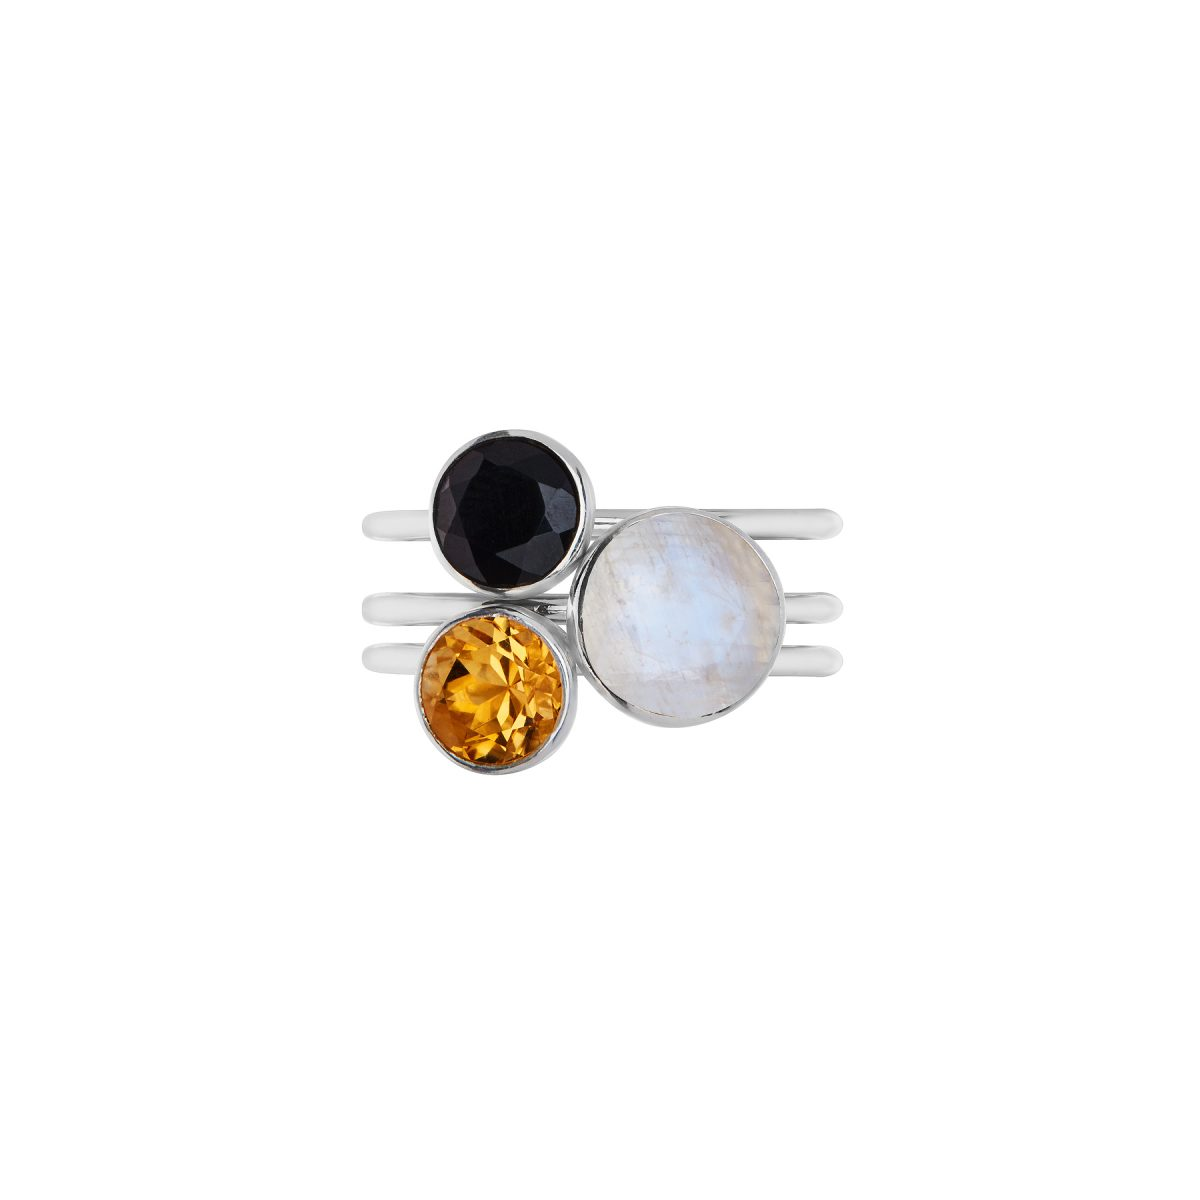 Rainbow Moonstone ring,Black Onyx 6mm round stacking ring.